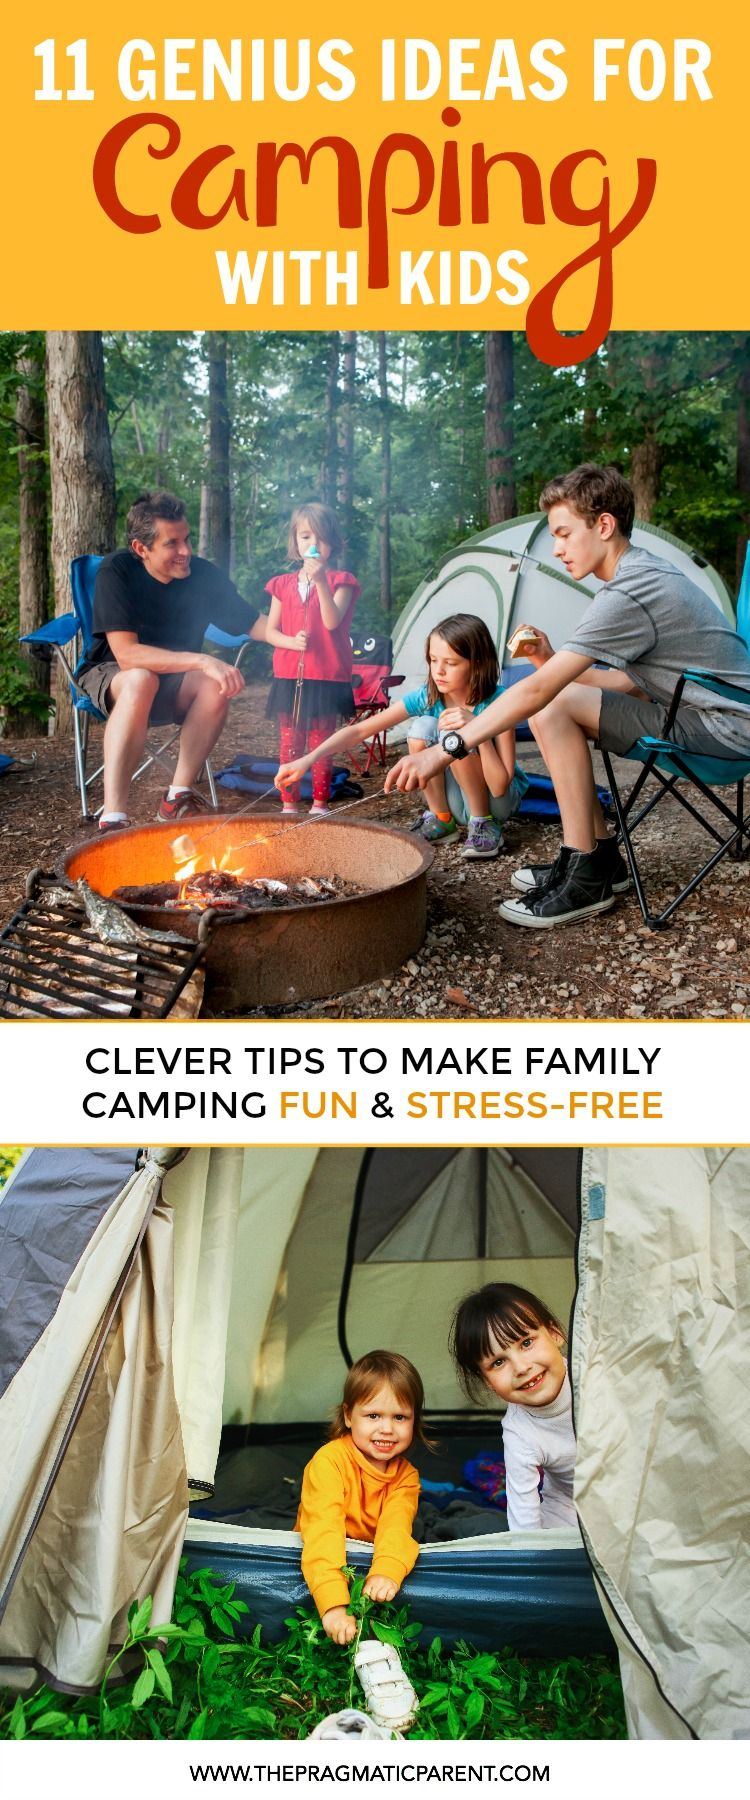 7 Genius Camping Hacks To Make With Kids Easy Fun How Organize